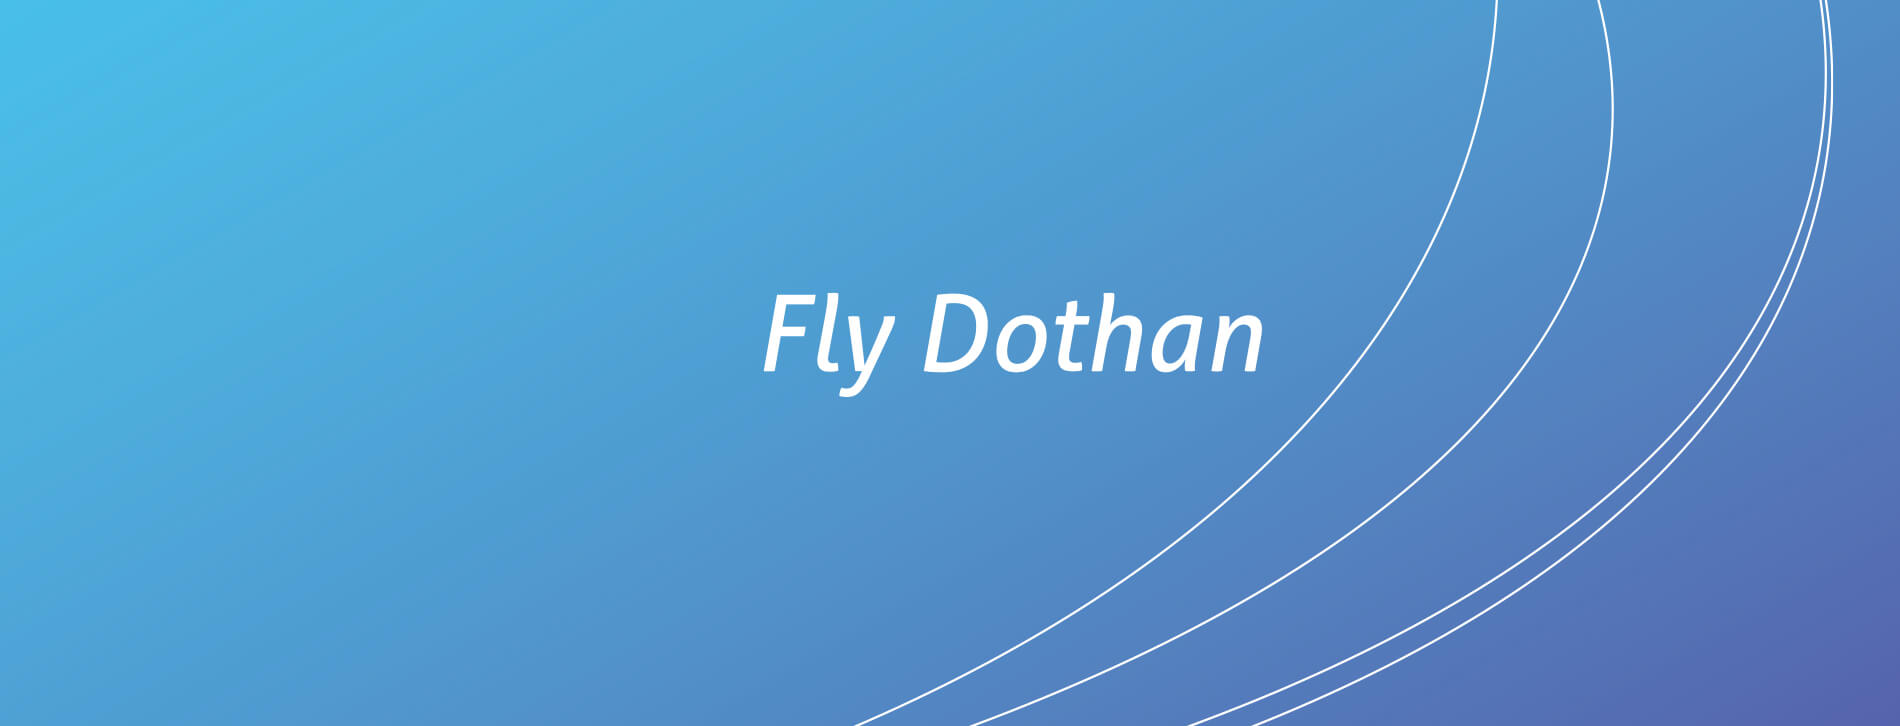 A New Brand Gives Lift to Dothan Regional Airport